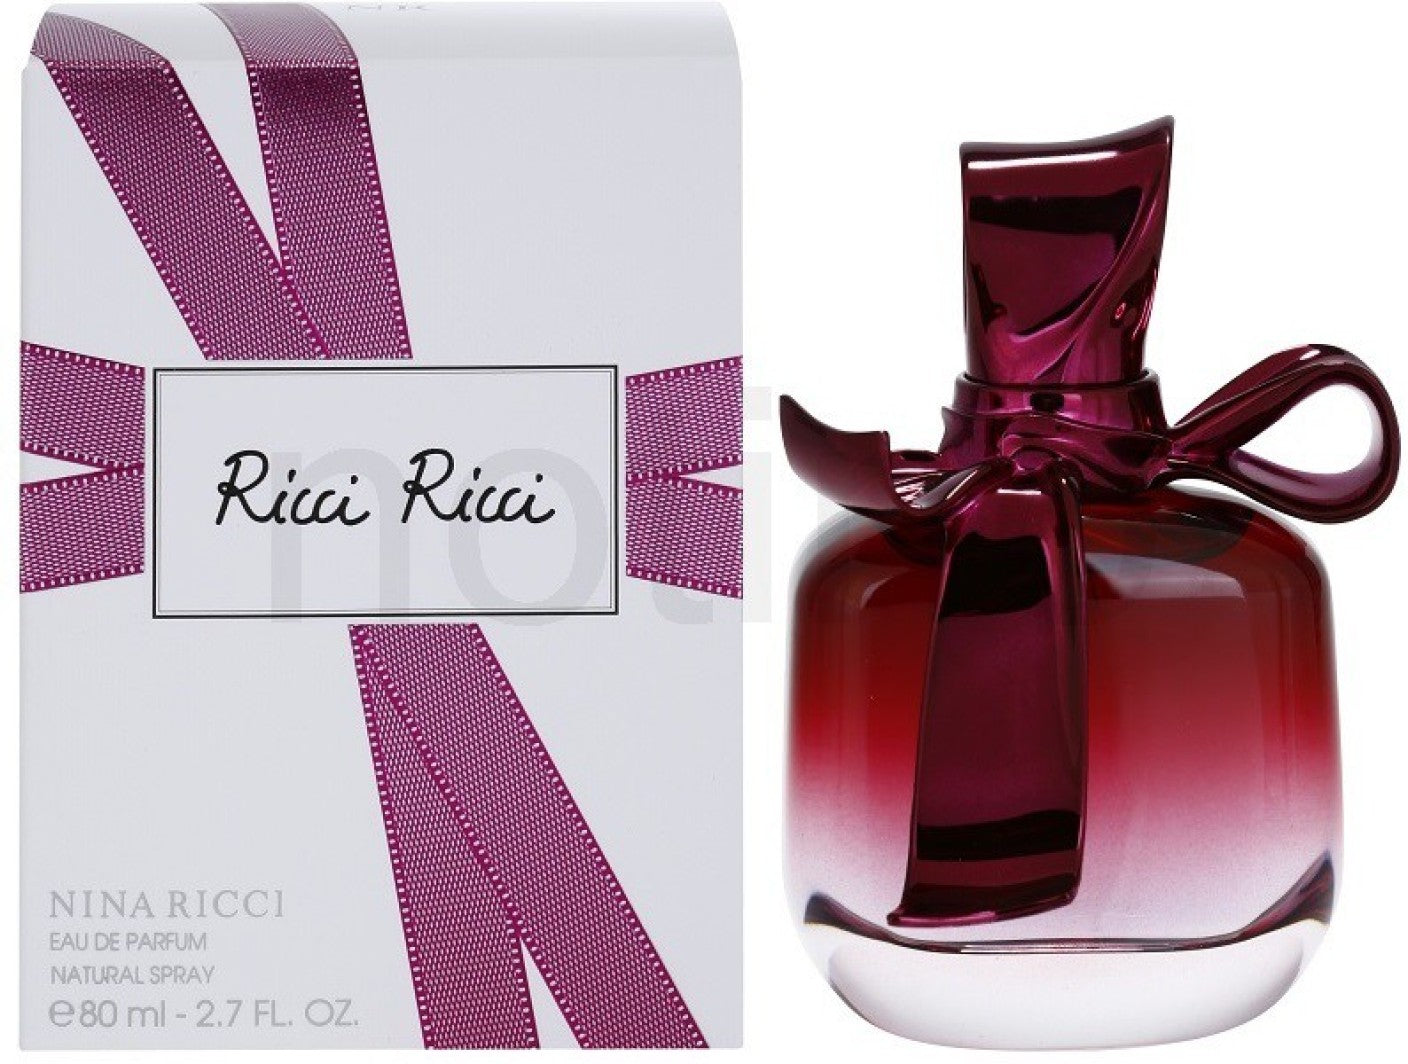 Perfume oil inspired by Ricci Ricci